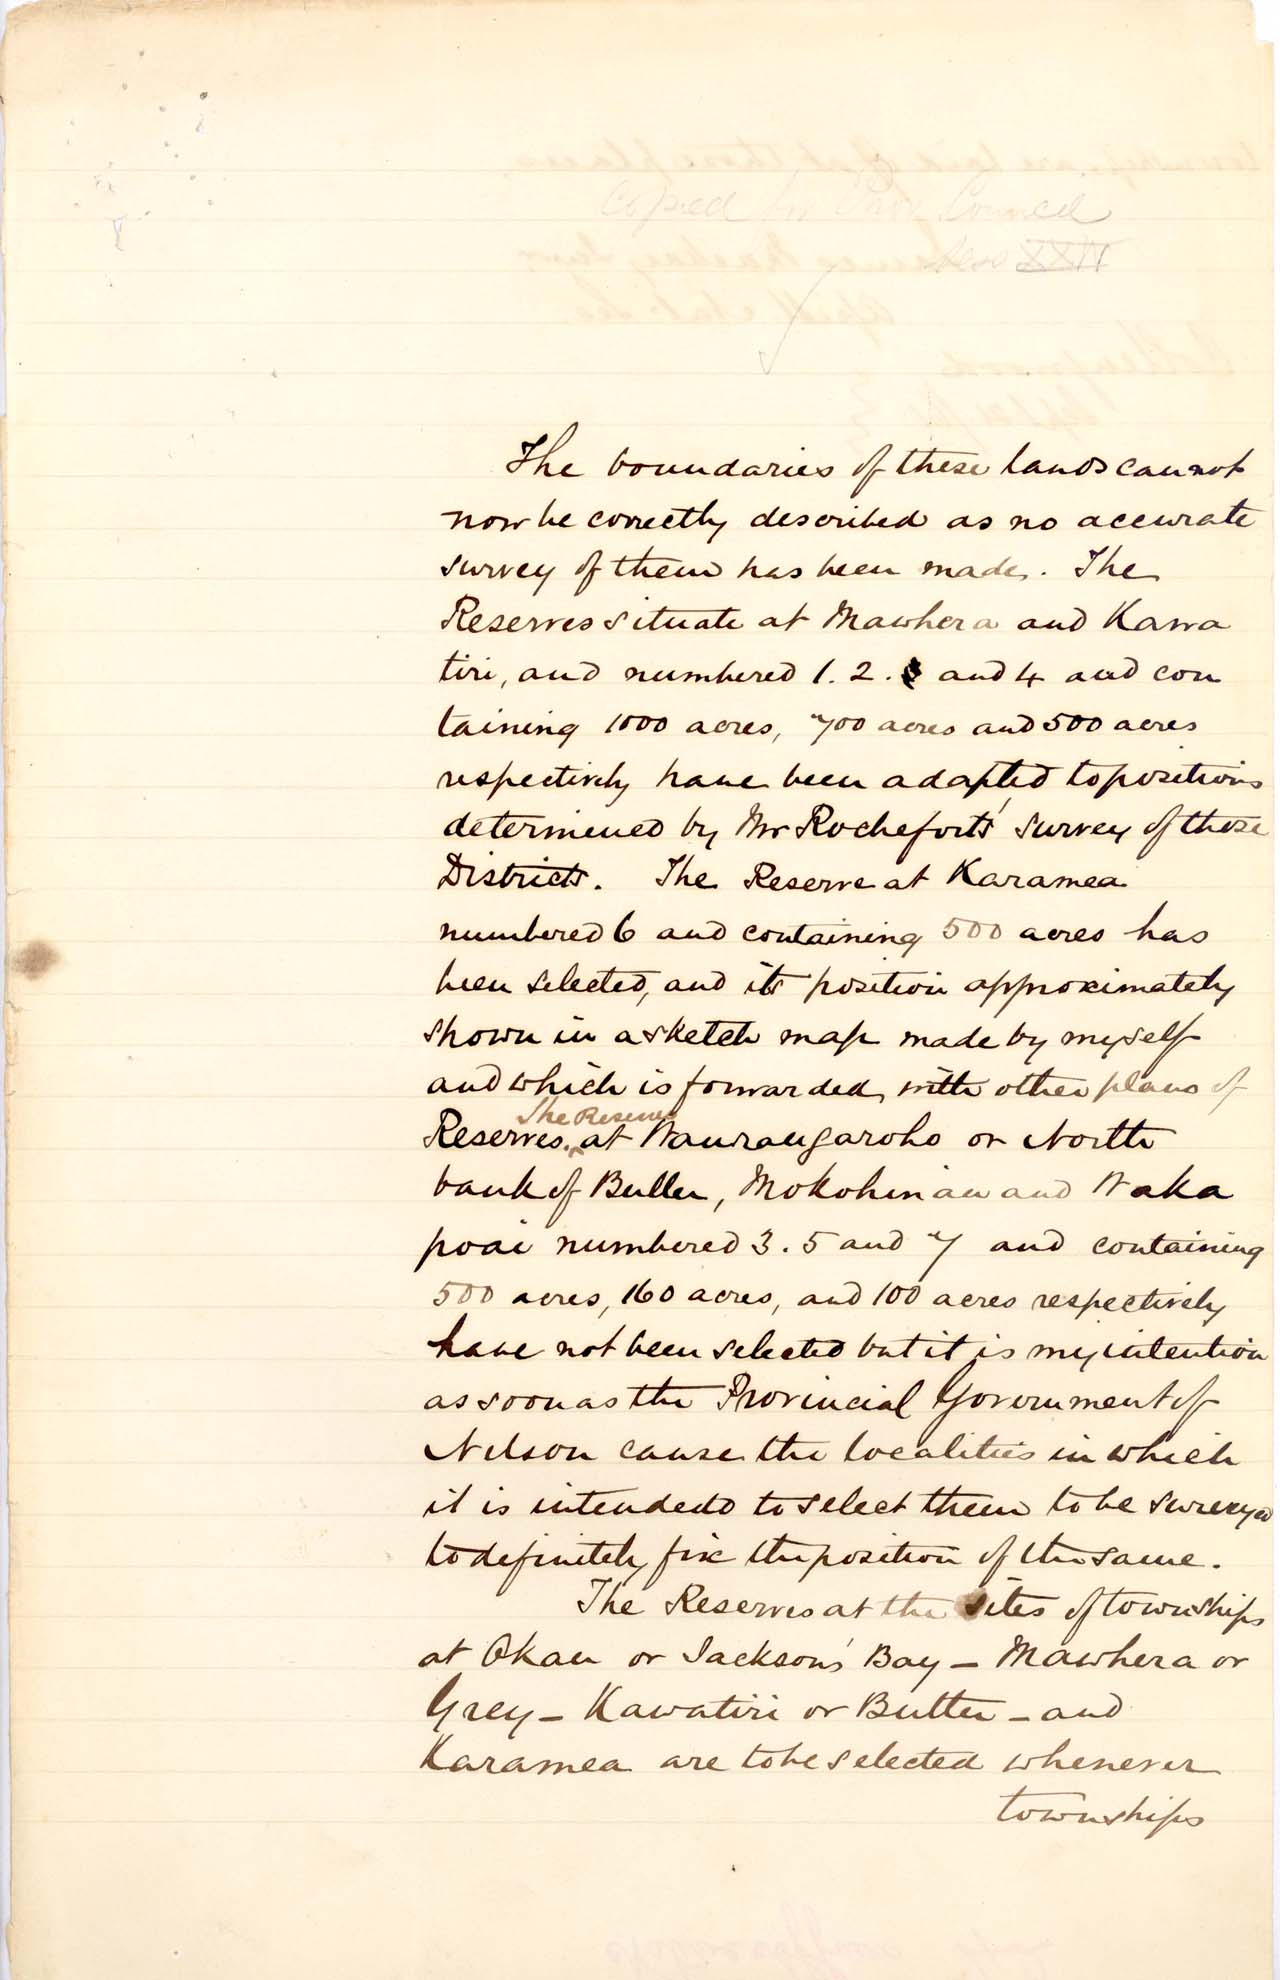 Boundaries of Poutini Maori Purchase - 1861 - Page 2